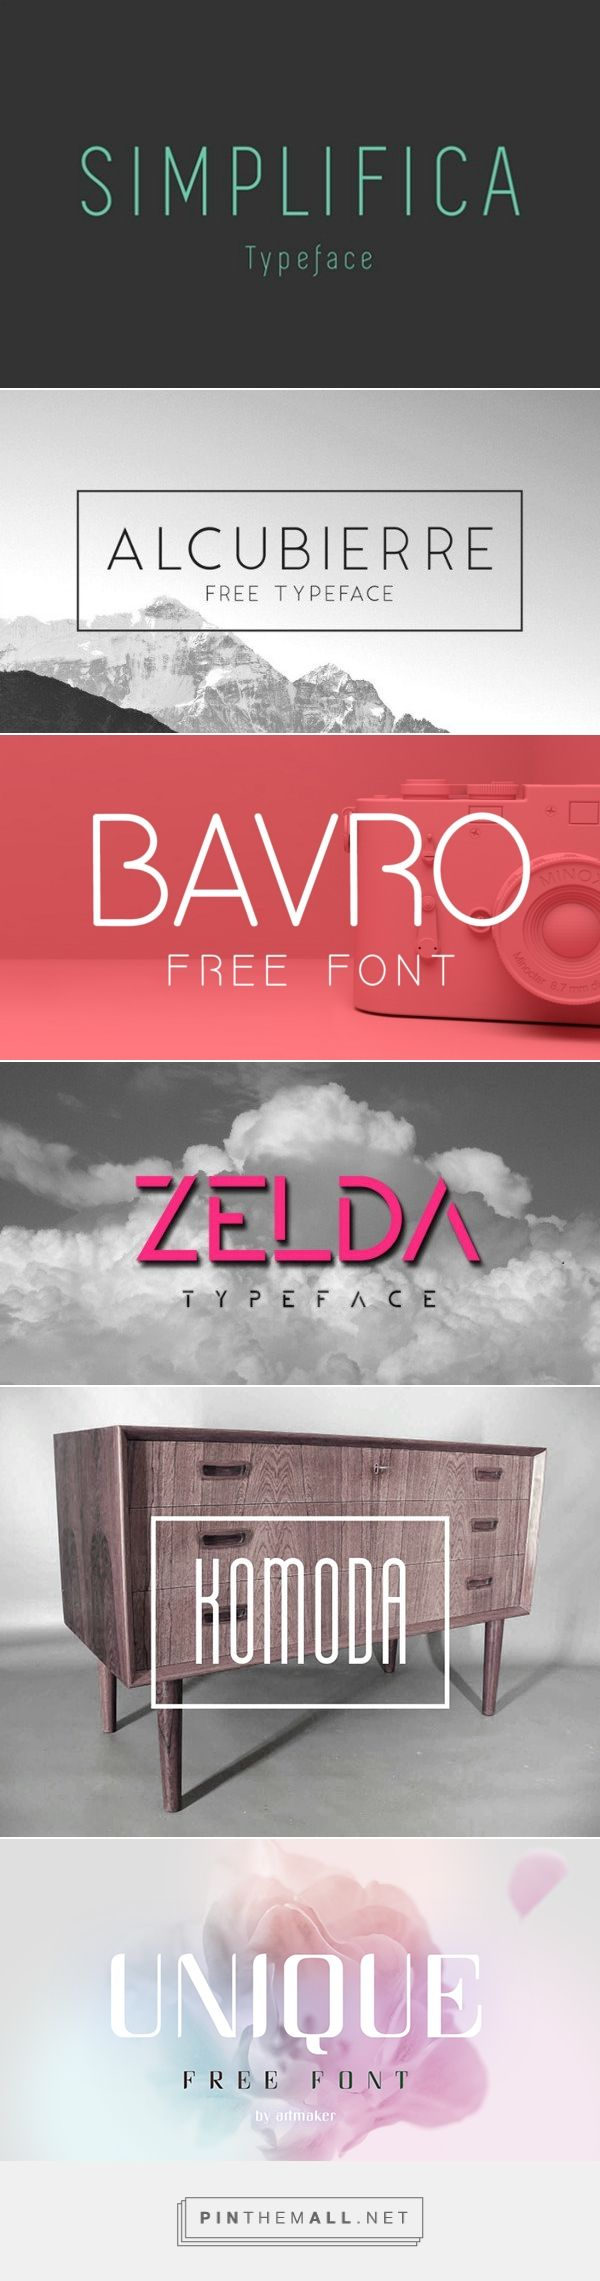 60 Free Sans Serif Fonts to Give Your Designs a Modern Touch – Design School